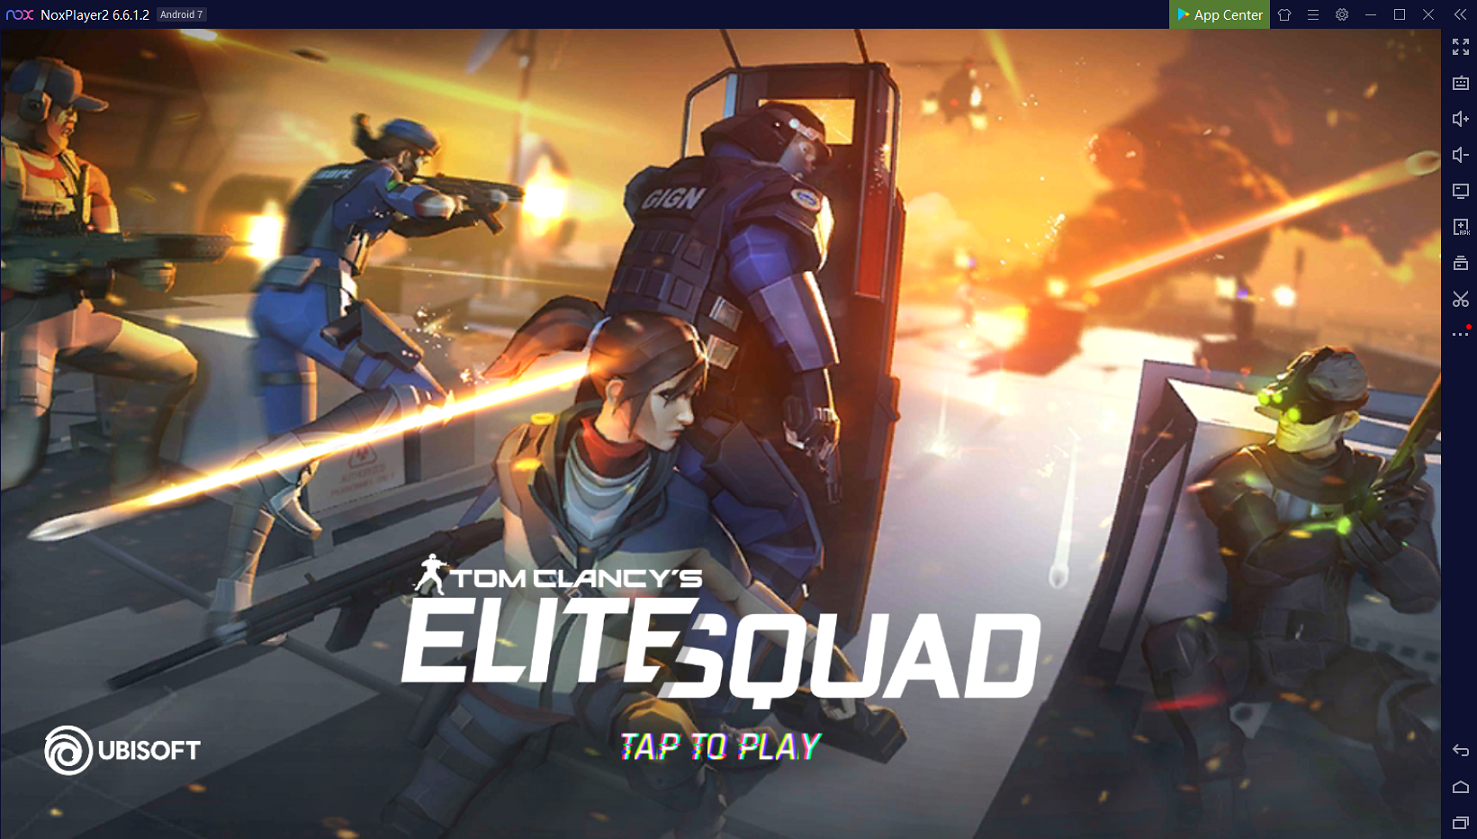 Download and Play Tom Clancy's Elite Squad – Military RPG on PC with NoxPlayer – NoxPlayer